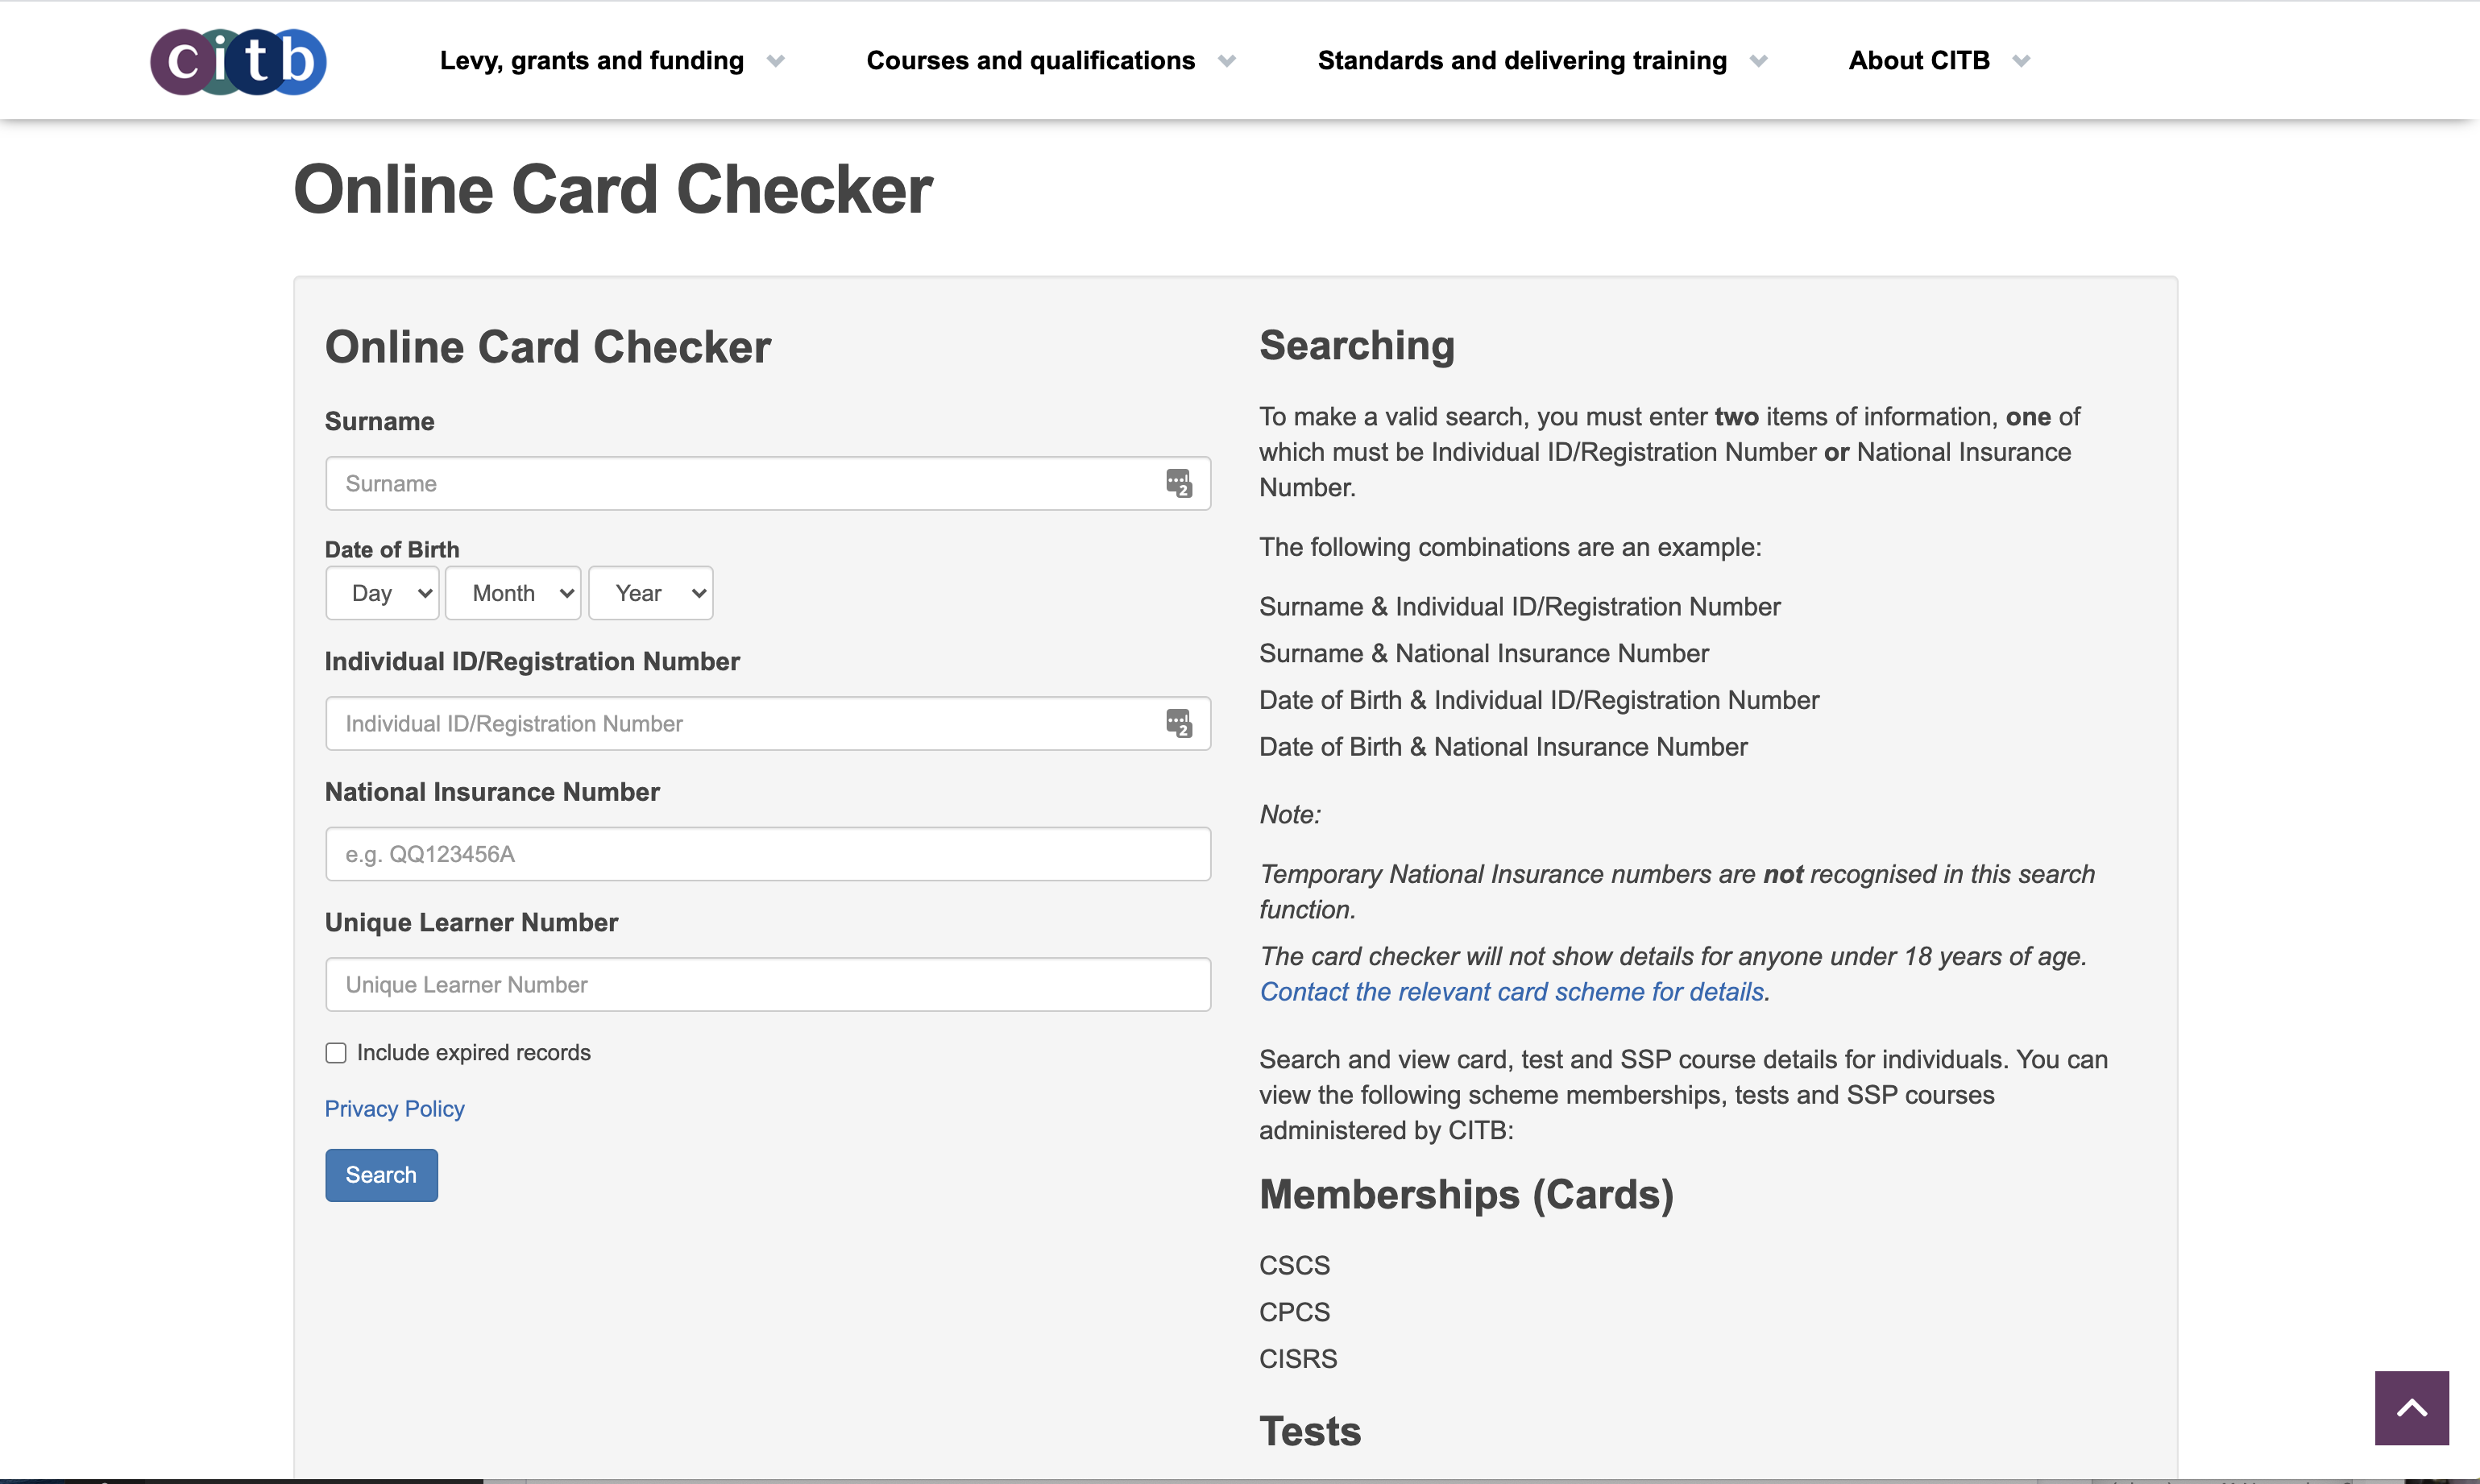 Screenshot of citb card checker to get your cscs card